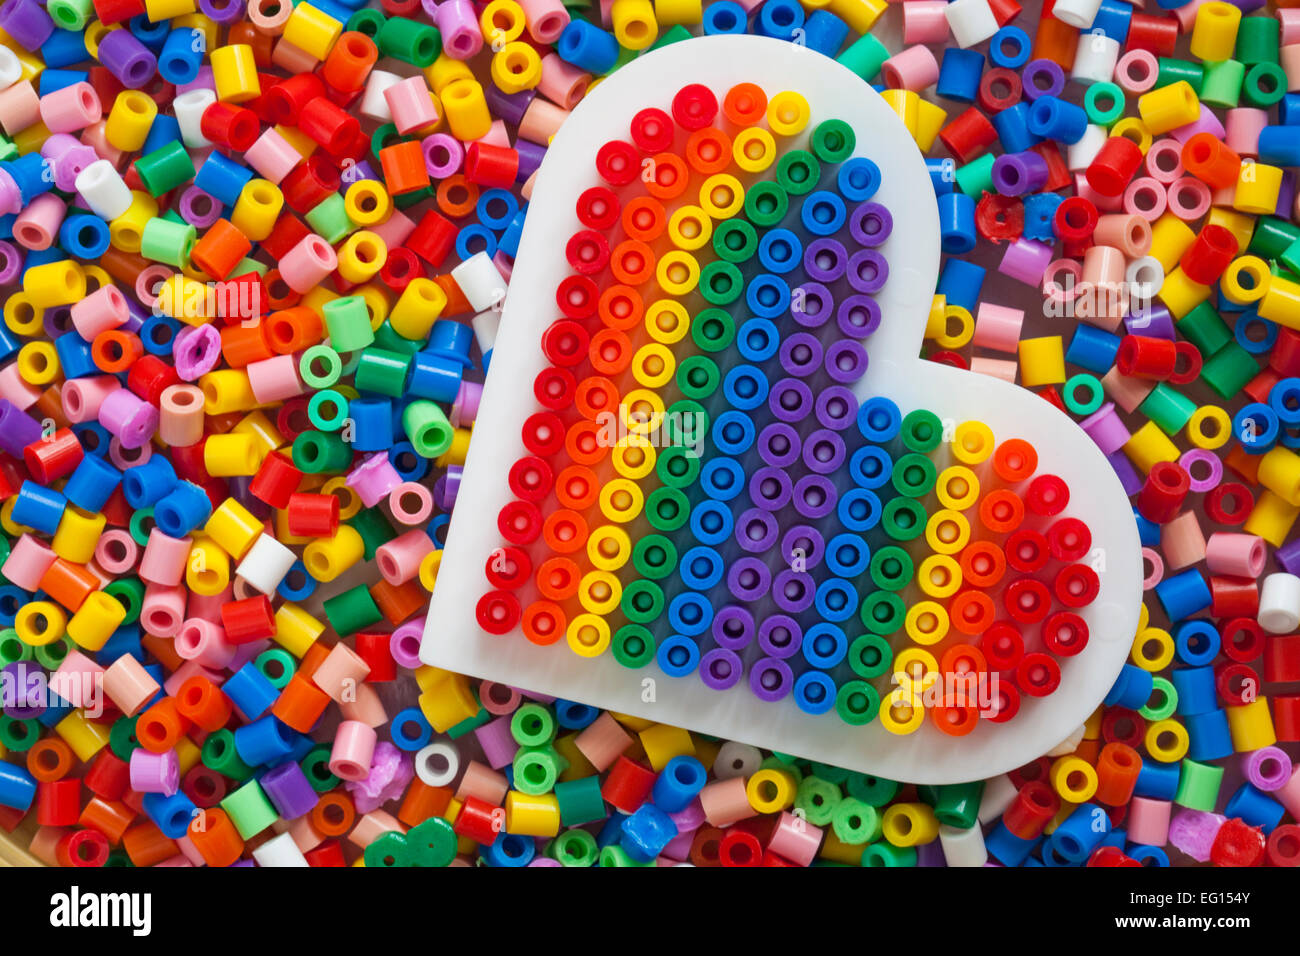 Plastic beads for crafts - Stock Photo Plastic Multi Coloured Hama Beads With Rainbow Heart Completed Template For Crafts